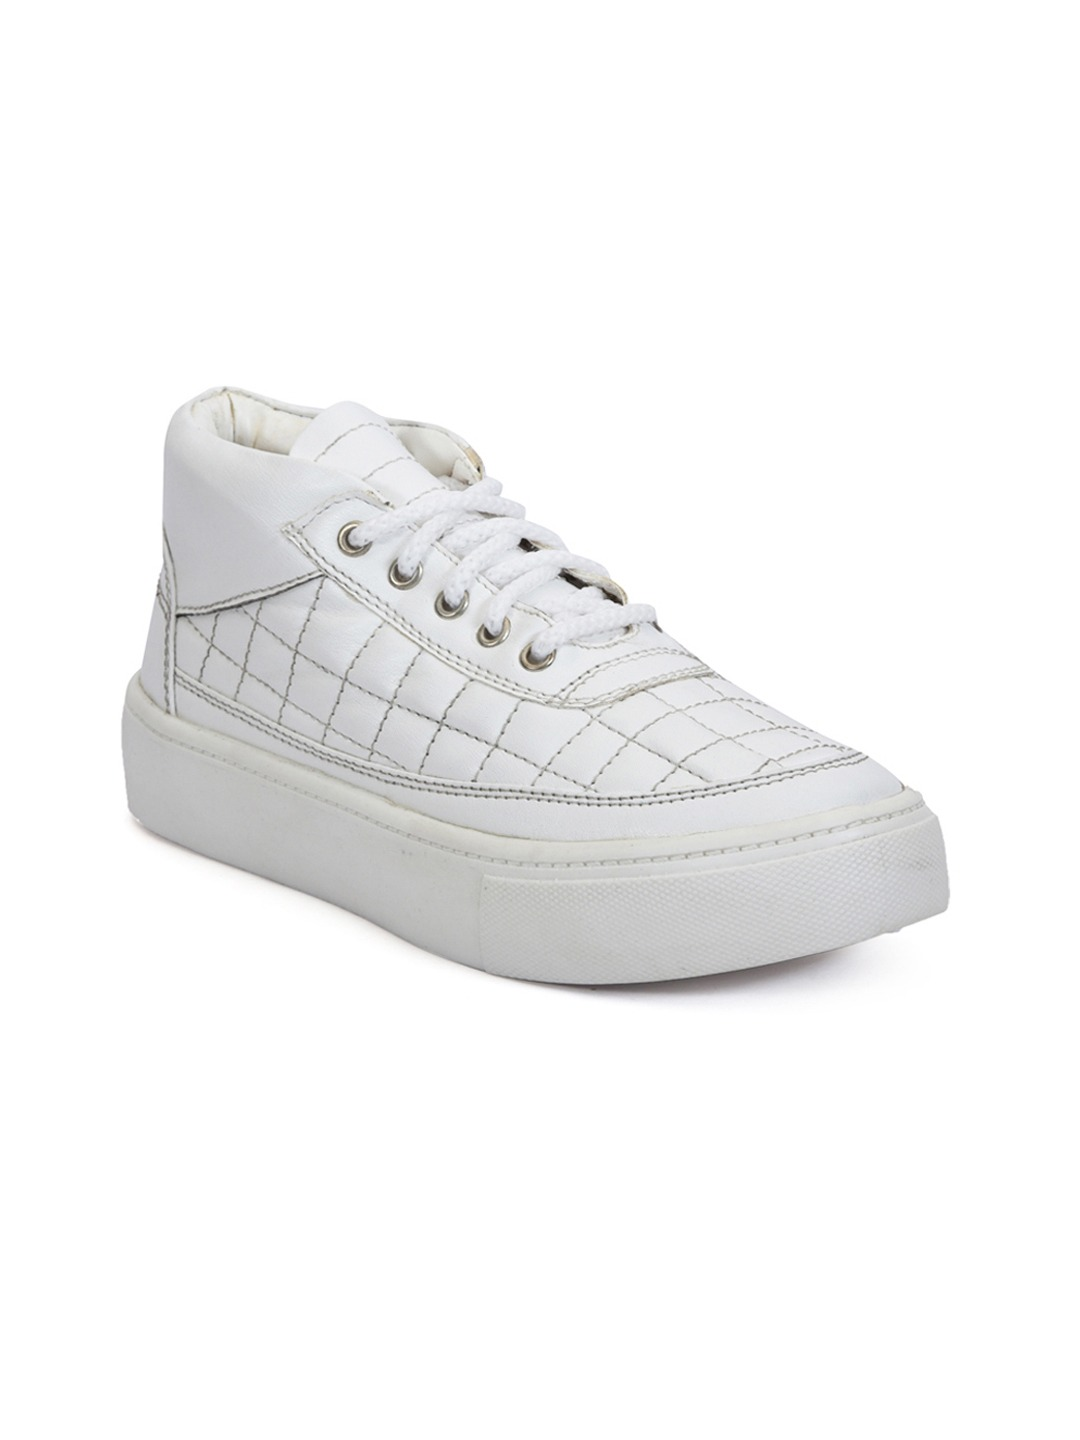 White Textured Synthetic Leather Mid-Top Sneakers